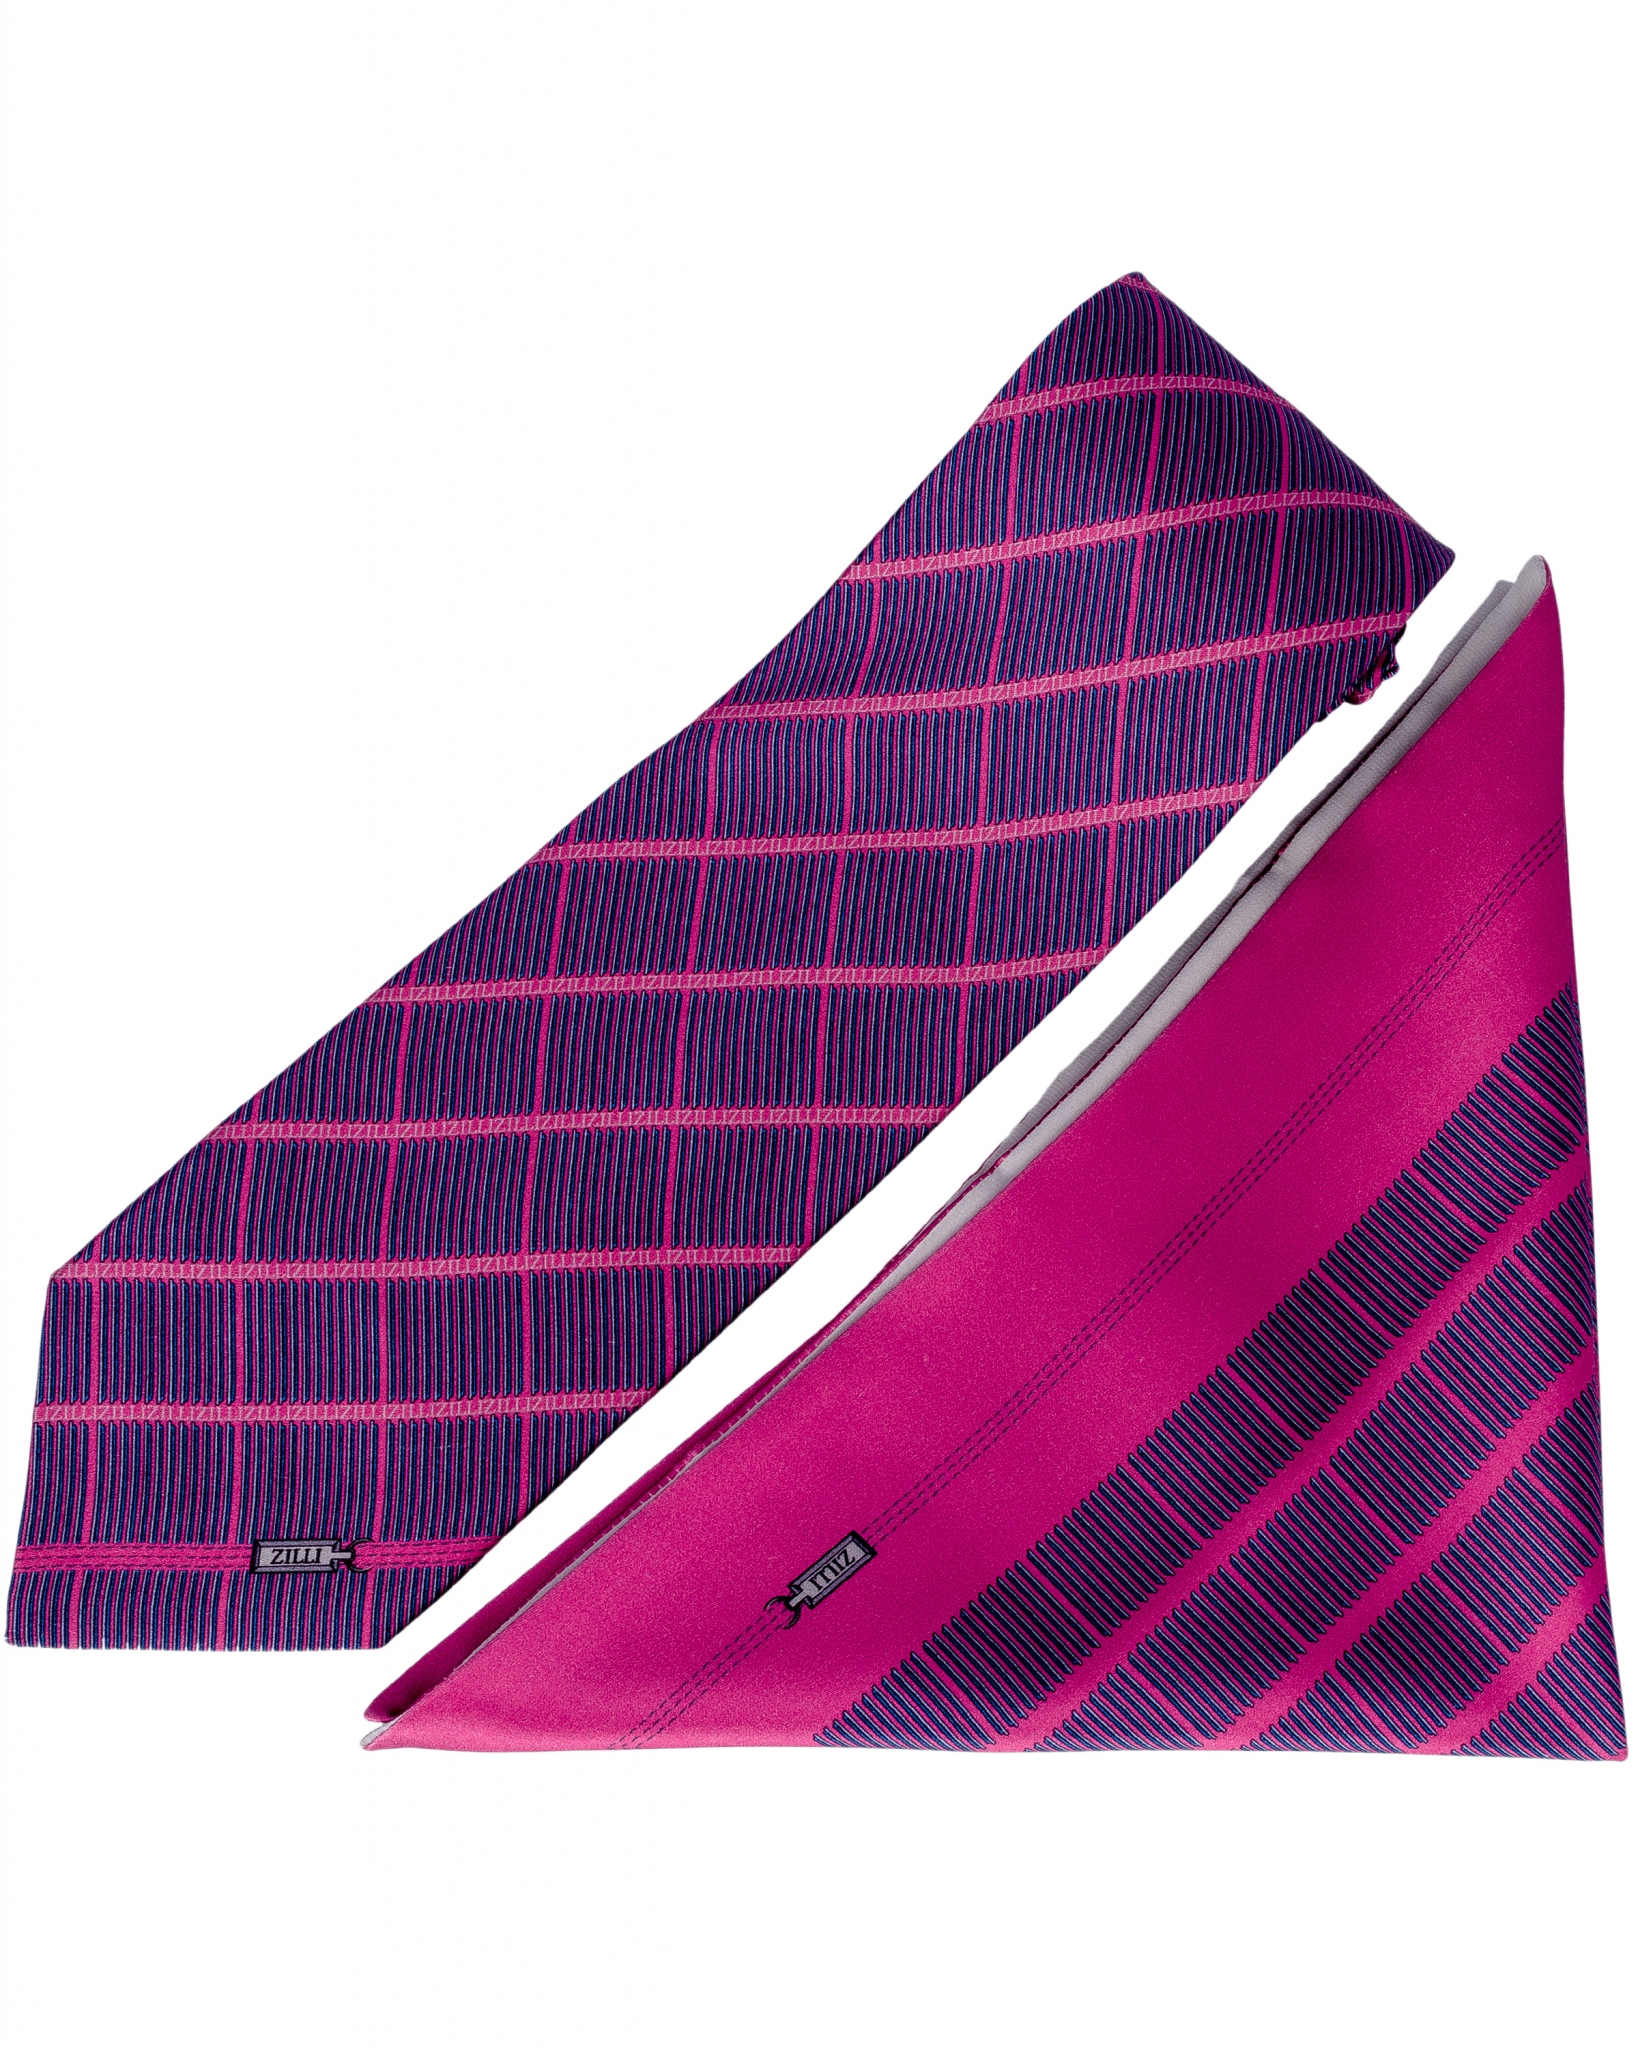 ZILLI – 100% Silk Tie & Pocket Square Set Pink|Purple 5274V09